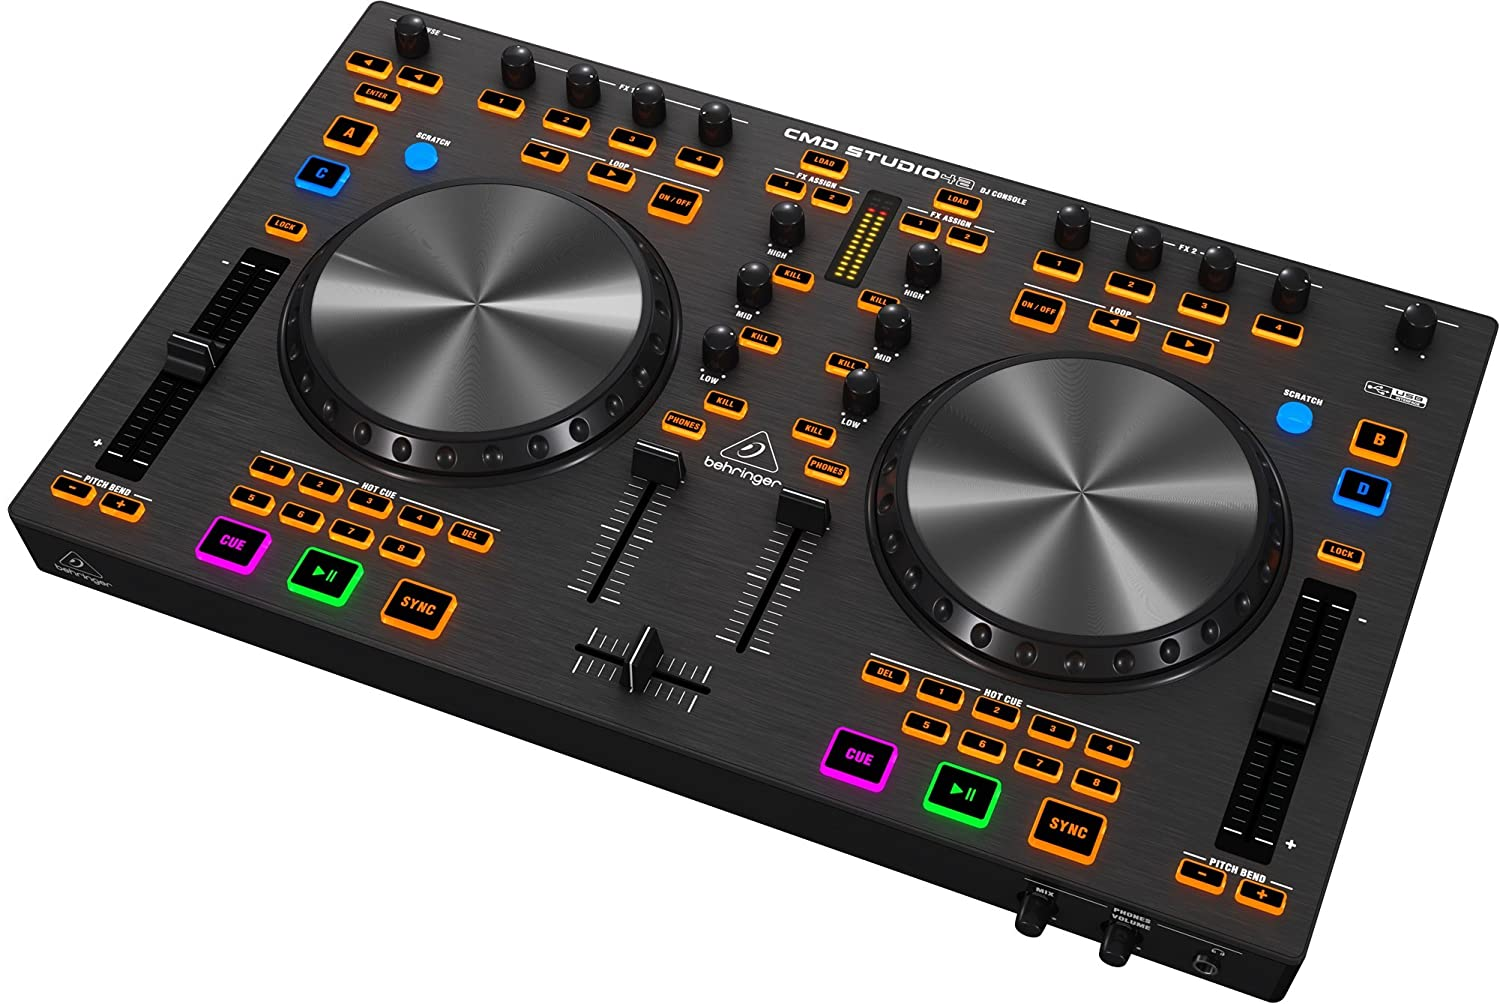 top 5 best dj controllers for beginners reviews best7reviews. Black Bedroom Furniture Sets. Home Design Ideas